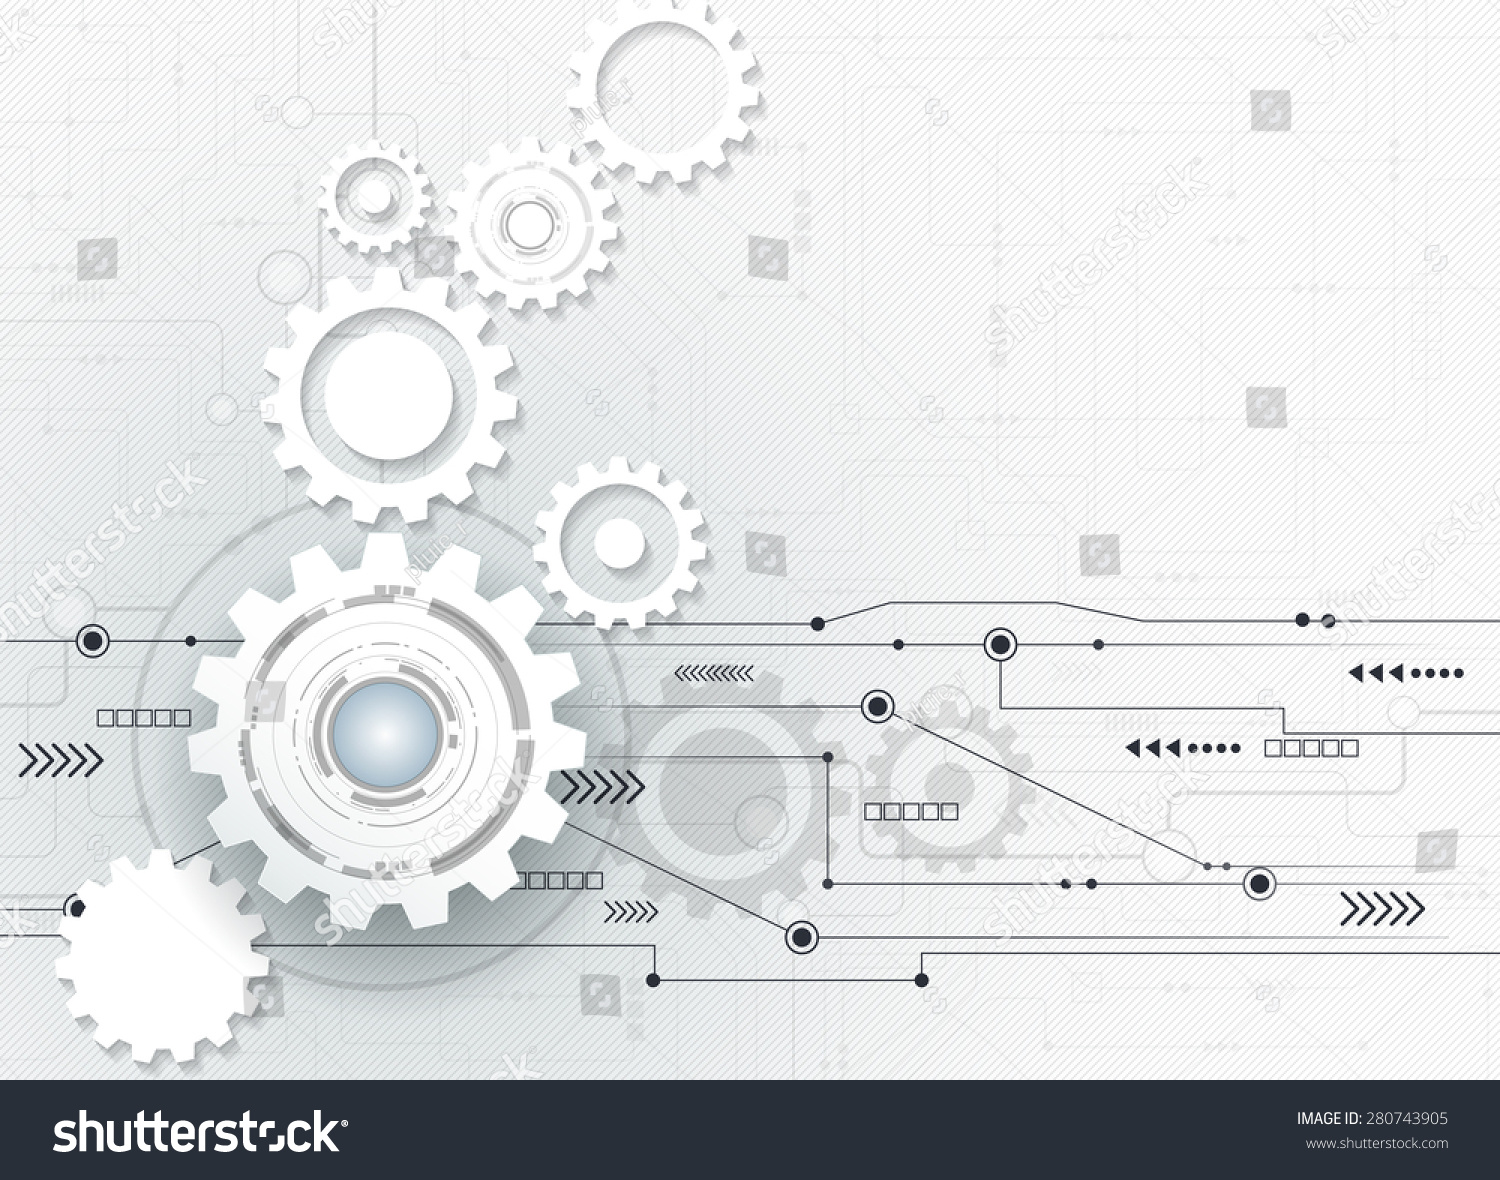 Royalty Free Vector Illustration Abstract Futuristic 280743905 Circuit Board Stock Image Futuristic3d White Paper Gear Wheel On High Computer